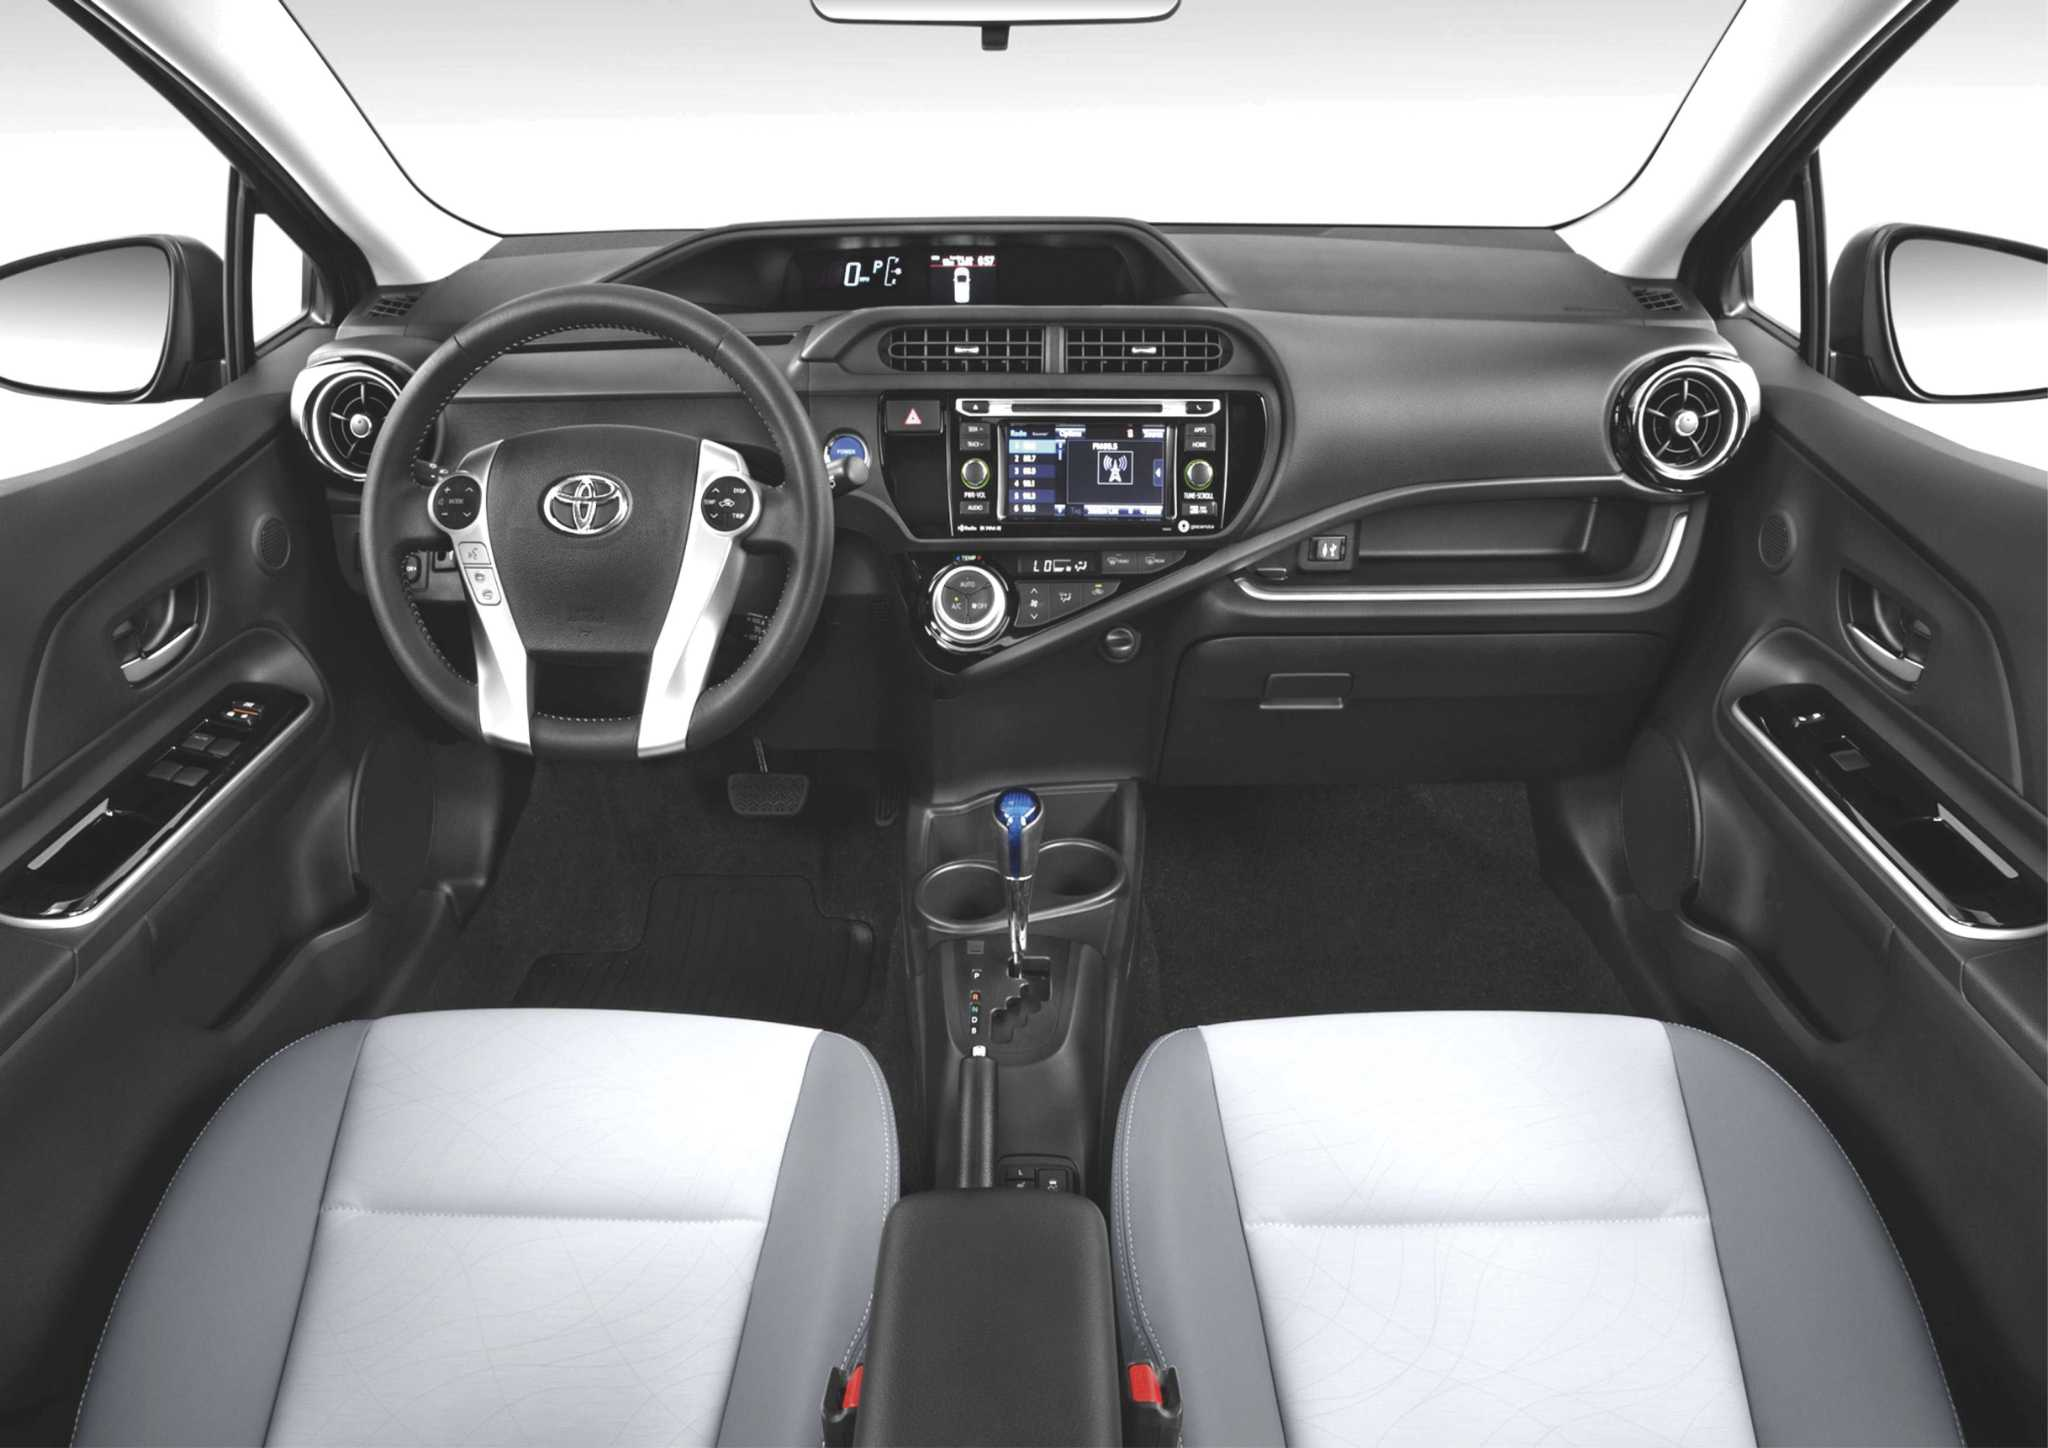 Toyota updates its Prius C hybrid for model year 2018